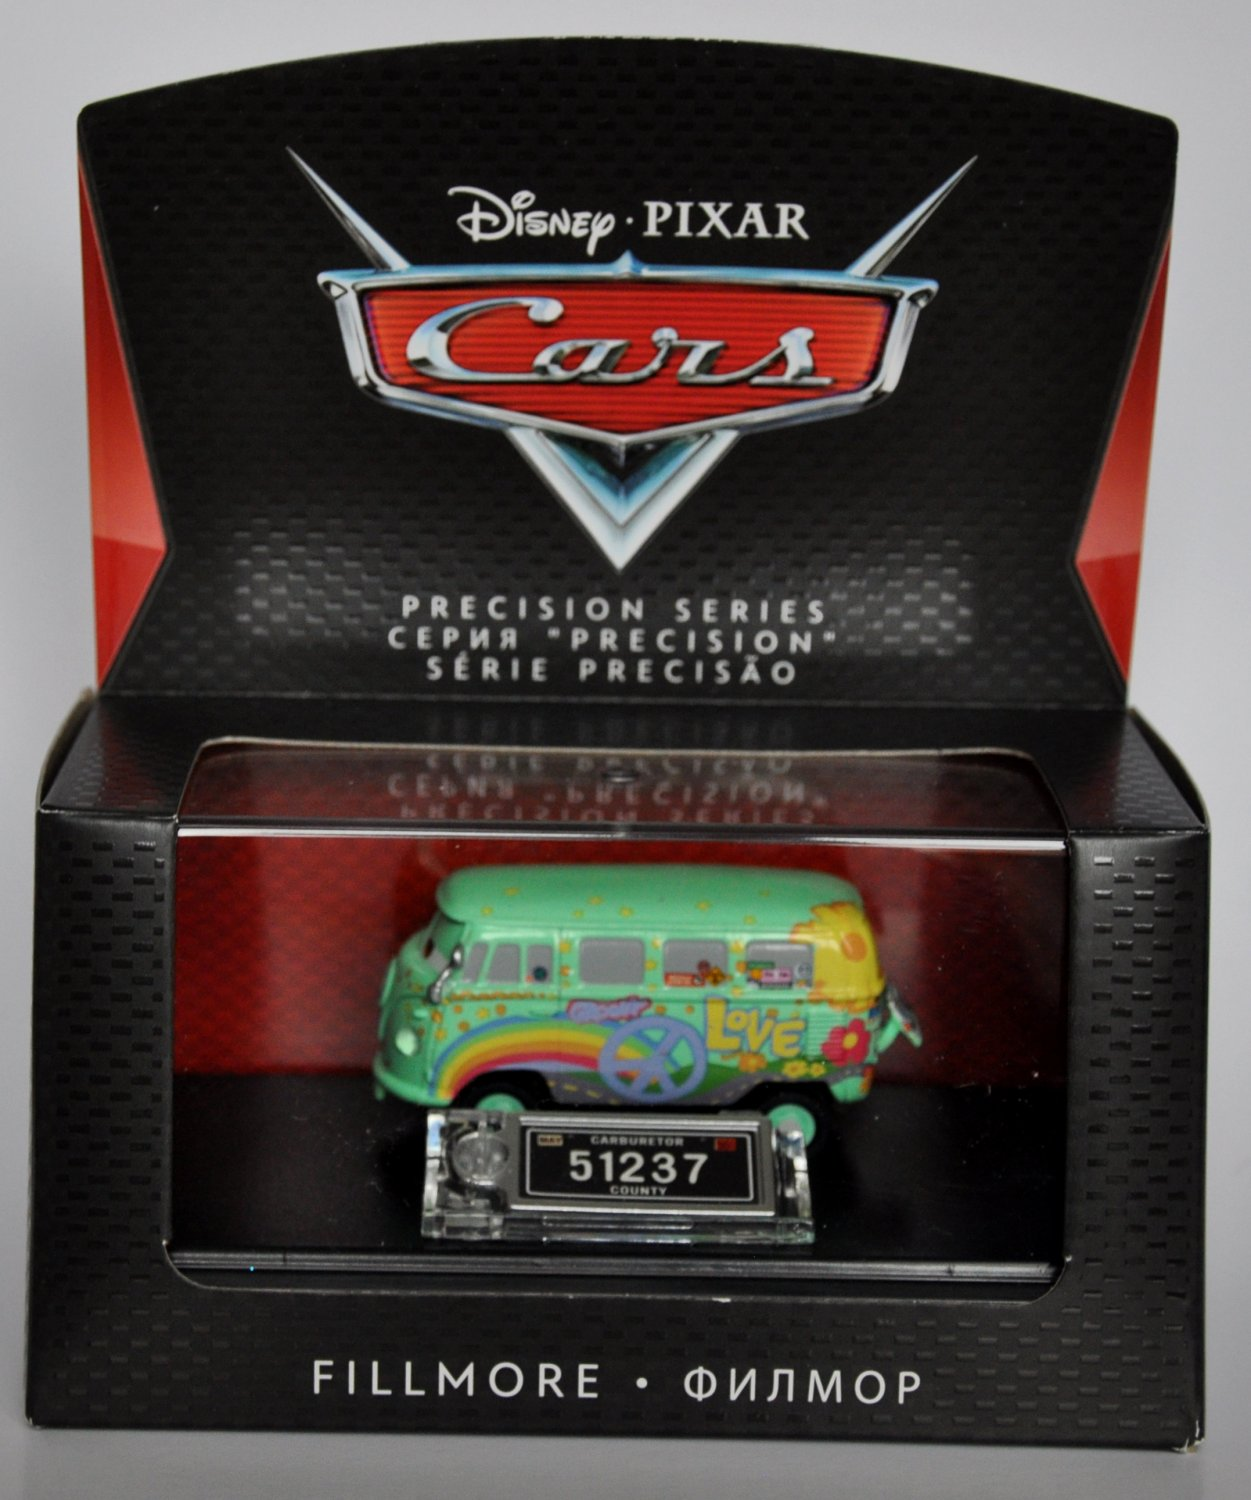 New Disney Pixar Die-Cast Cars Precision Series FILLMORE with Collector Case